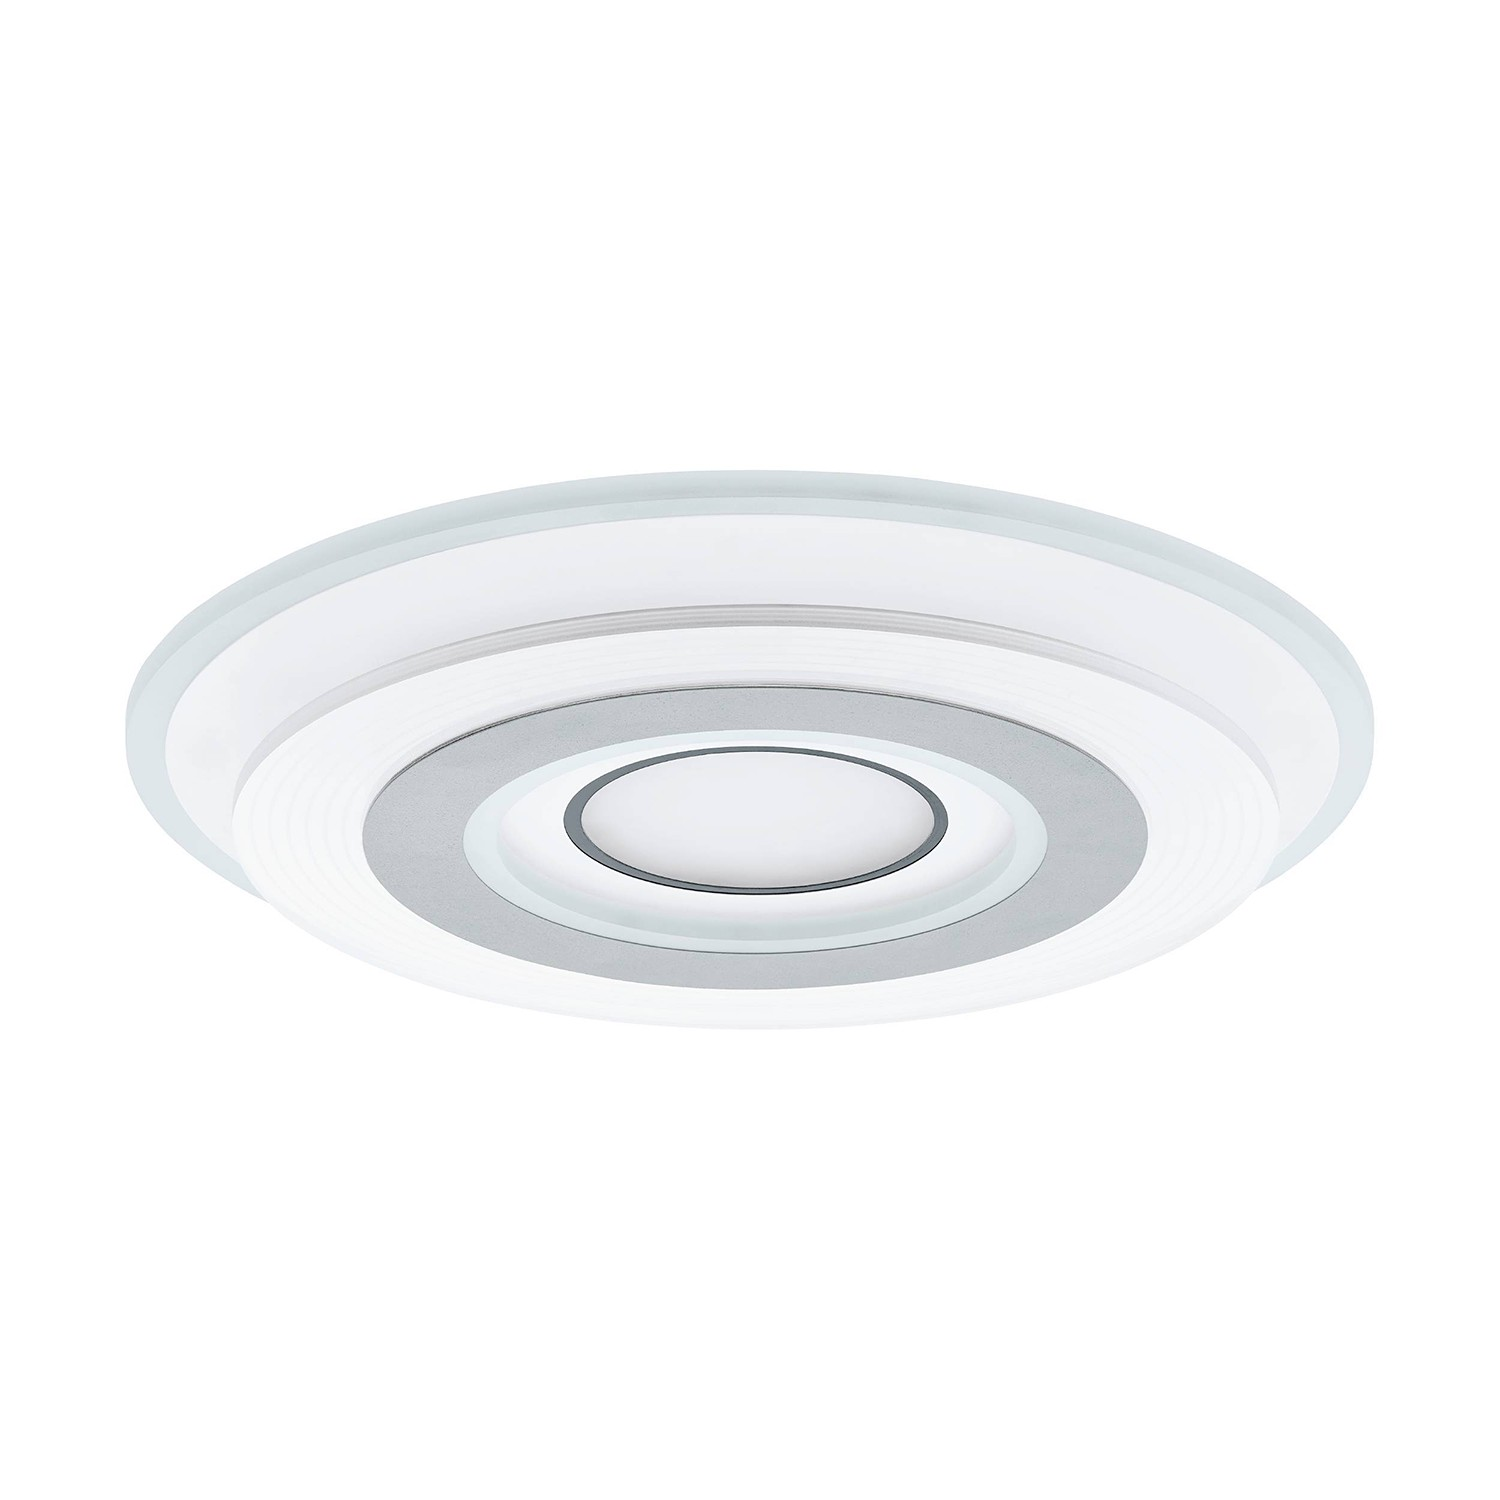 home24 LED-Deckenleuchte Reducta 2